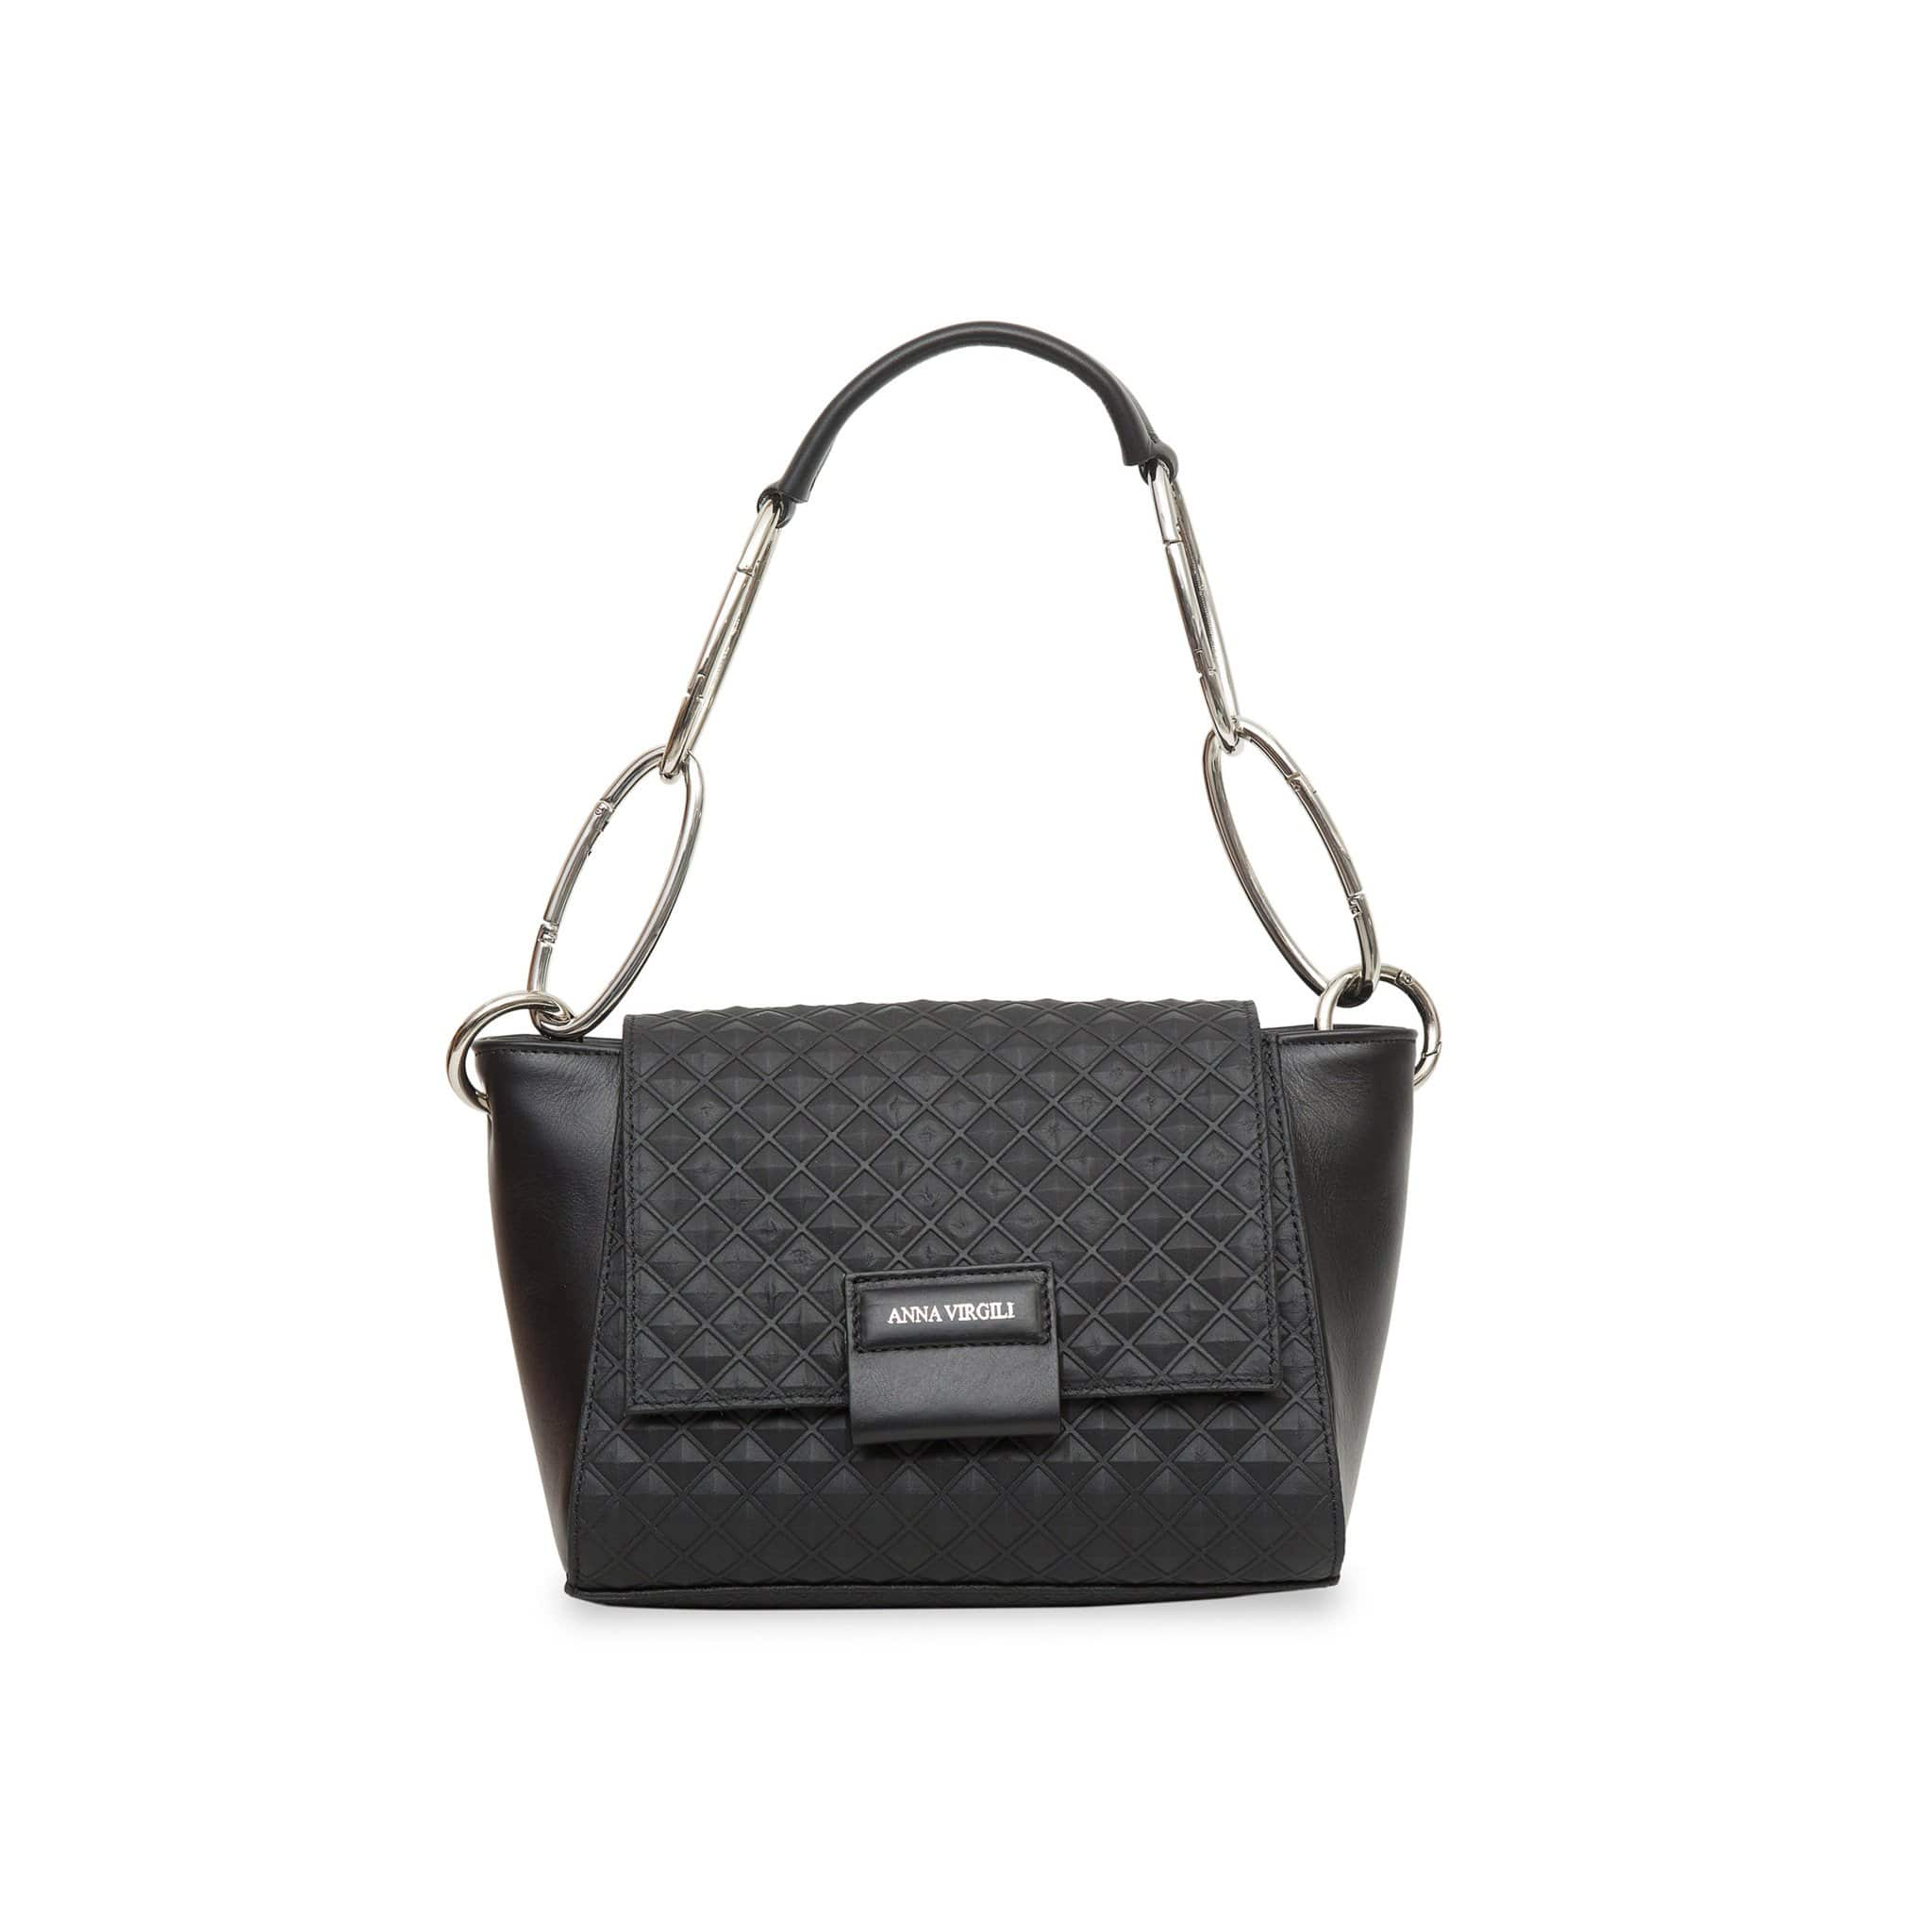 Cabiria Mini Pyramid Leather Handbag - Black